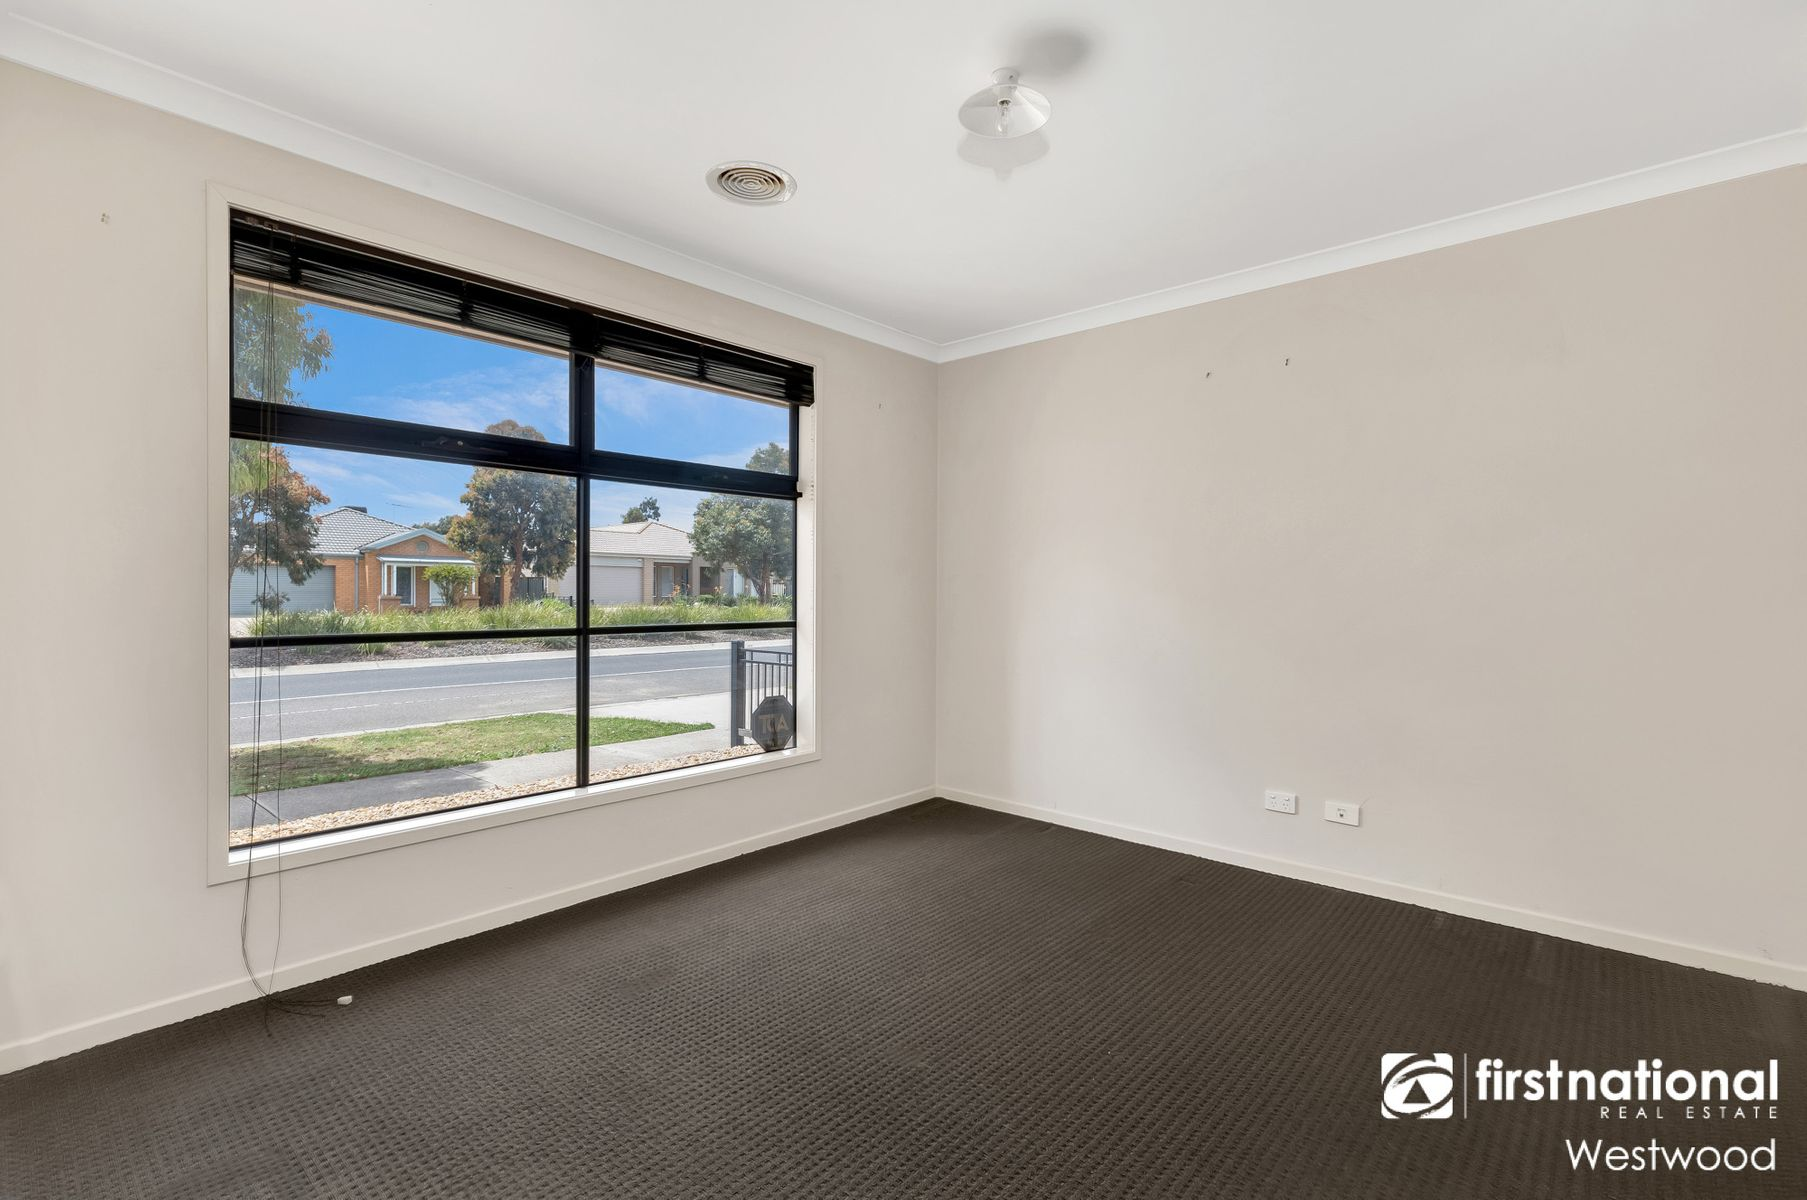 29 Wickford Road, Tarneit, VIC 3029